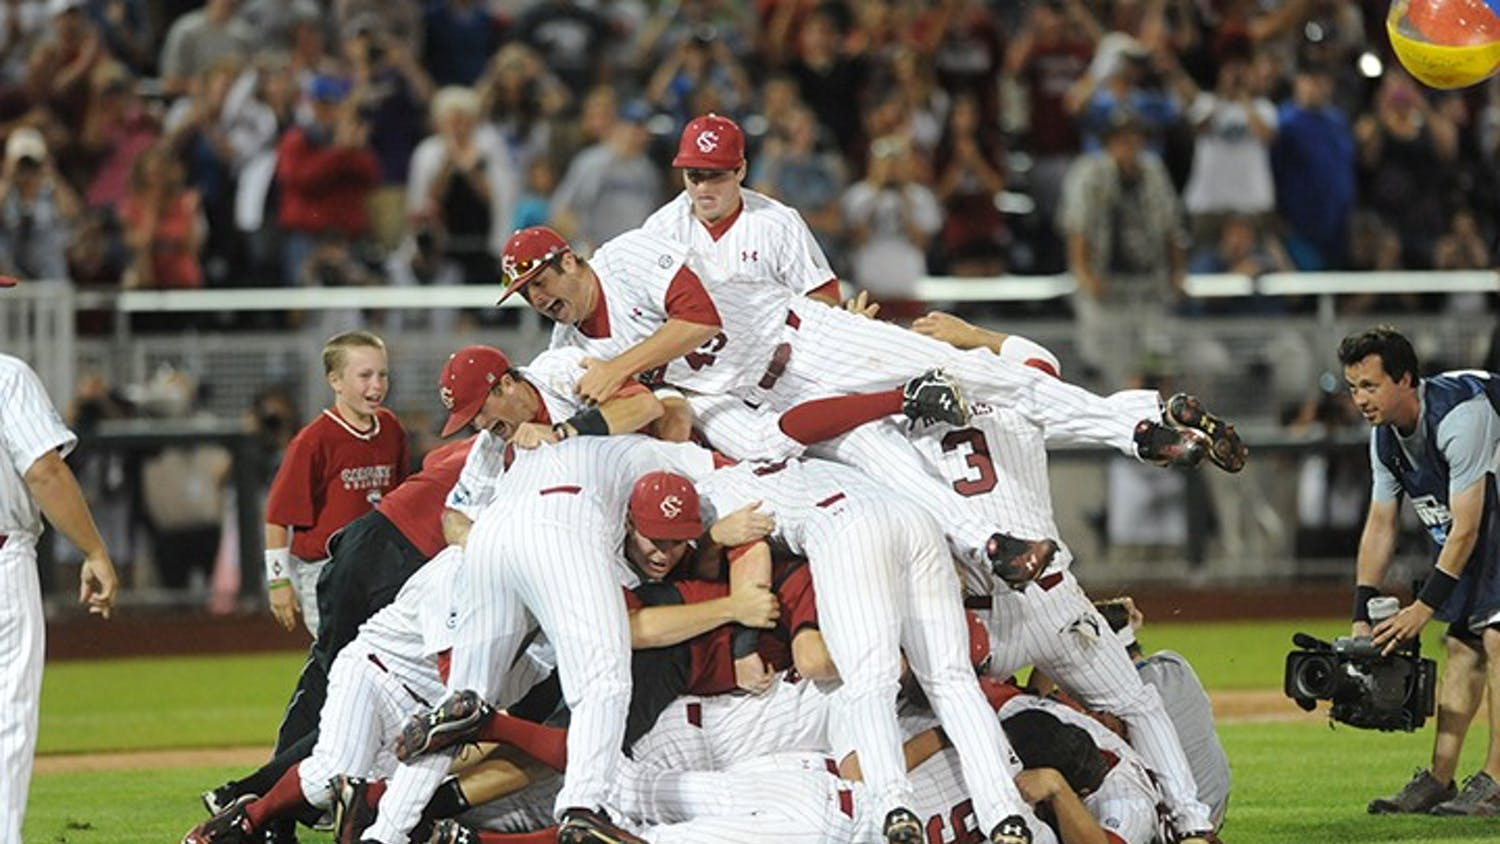 The 2011 baseball team dogpiling the field after winning the college World Series.